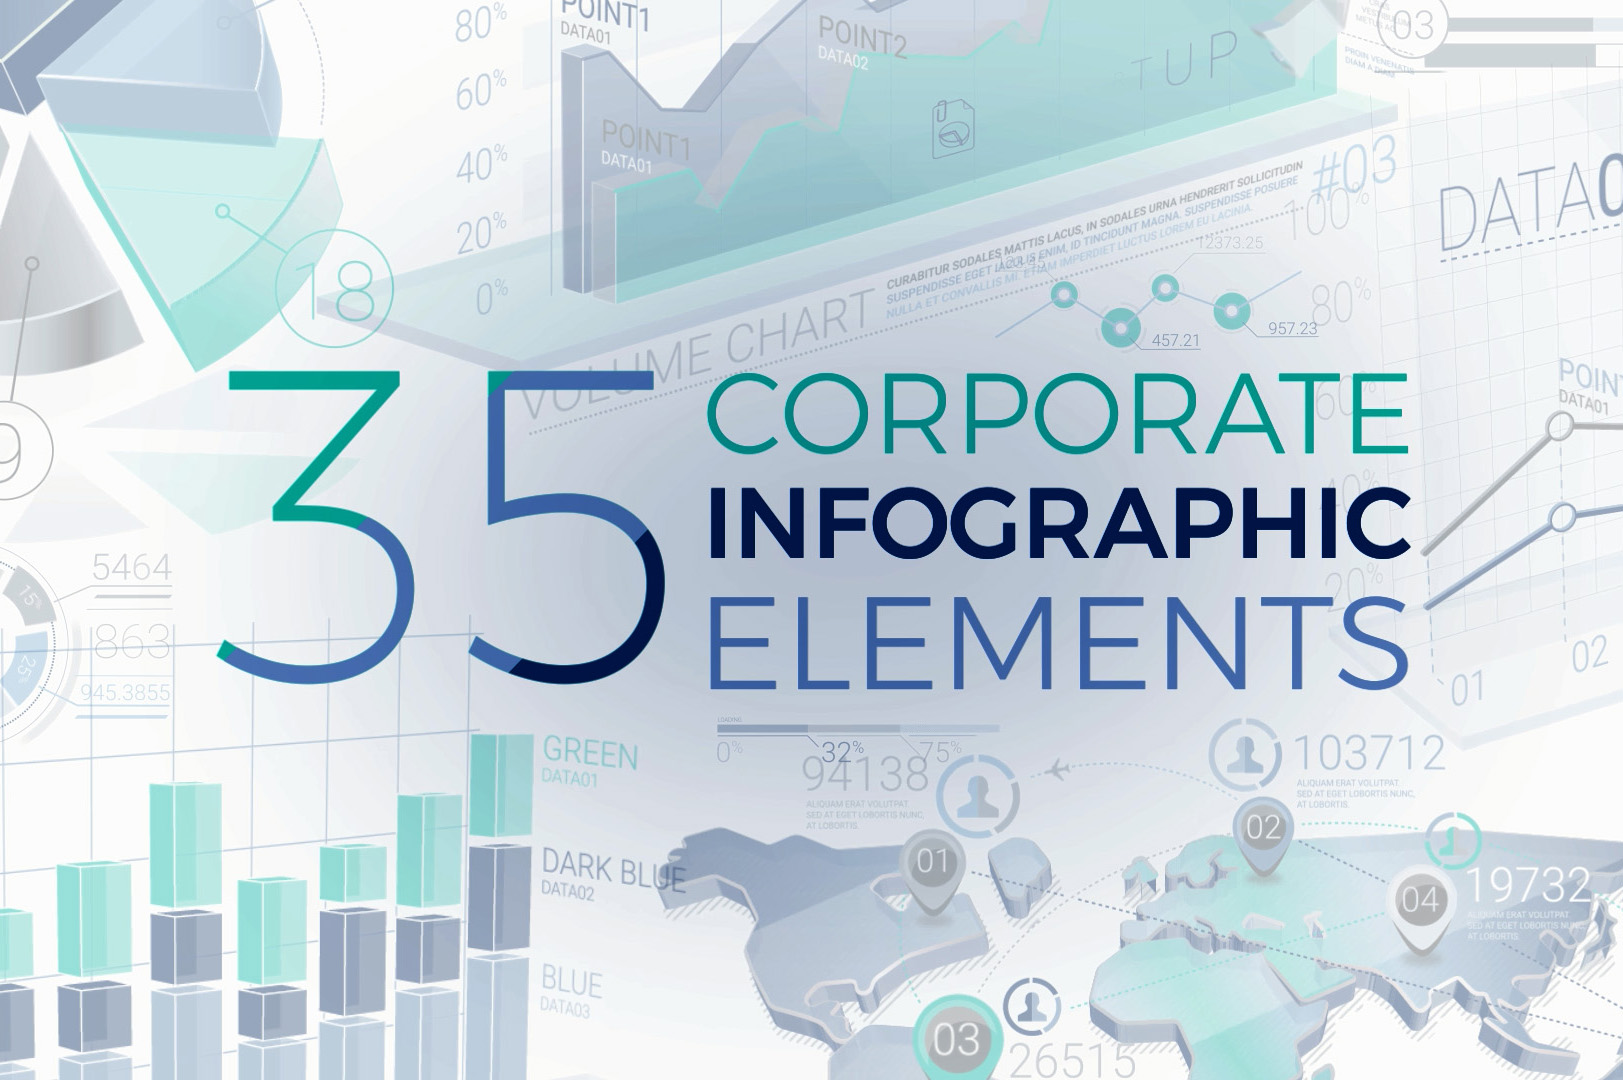 Corporate Infographic Elements After Effects Template